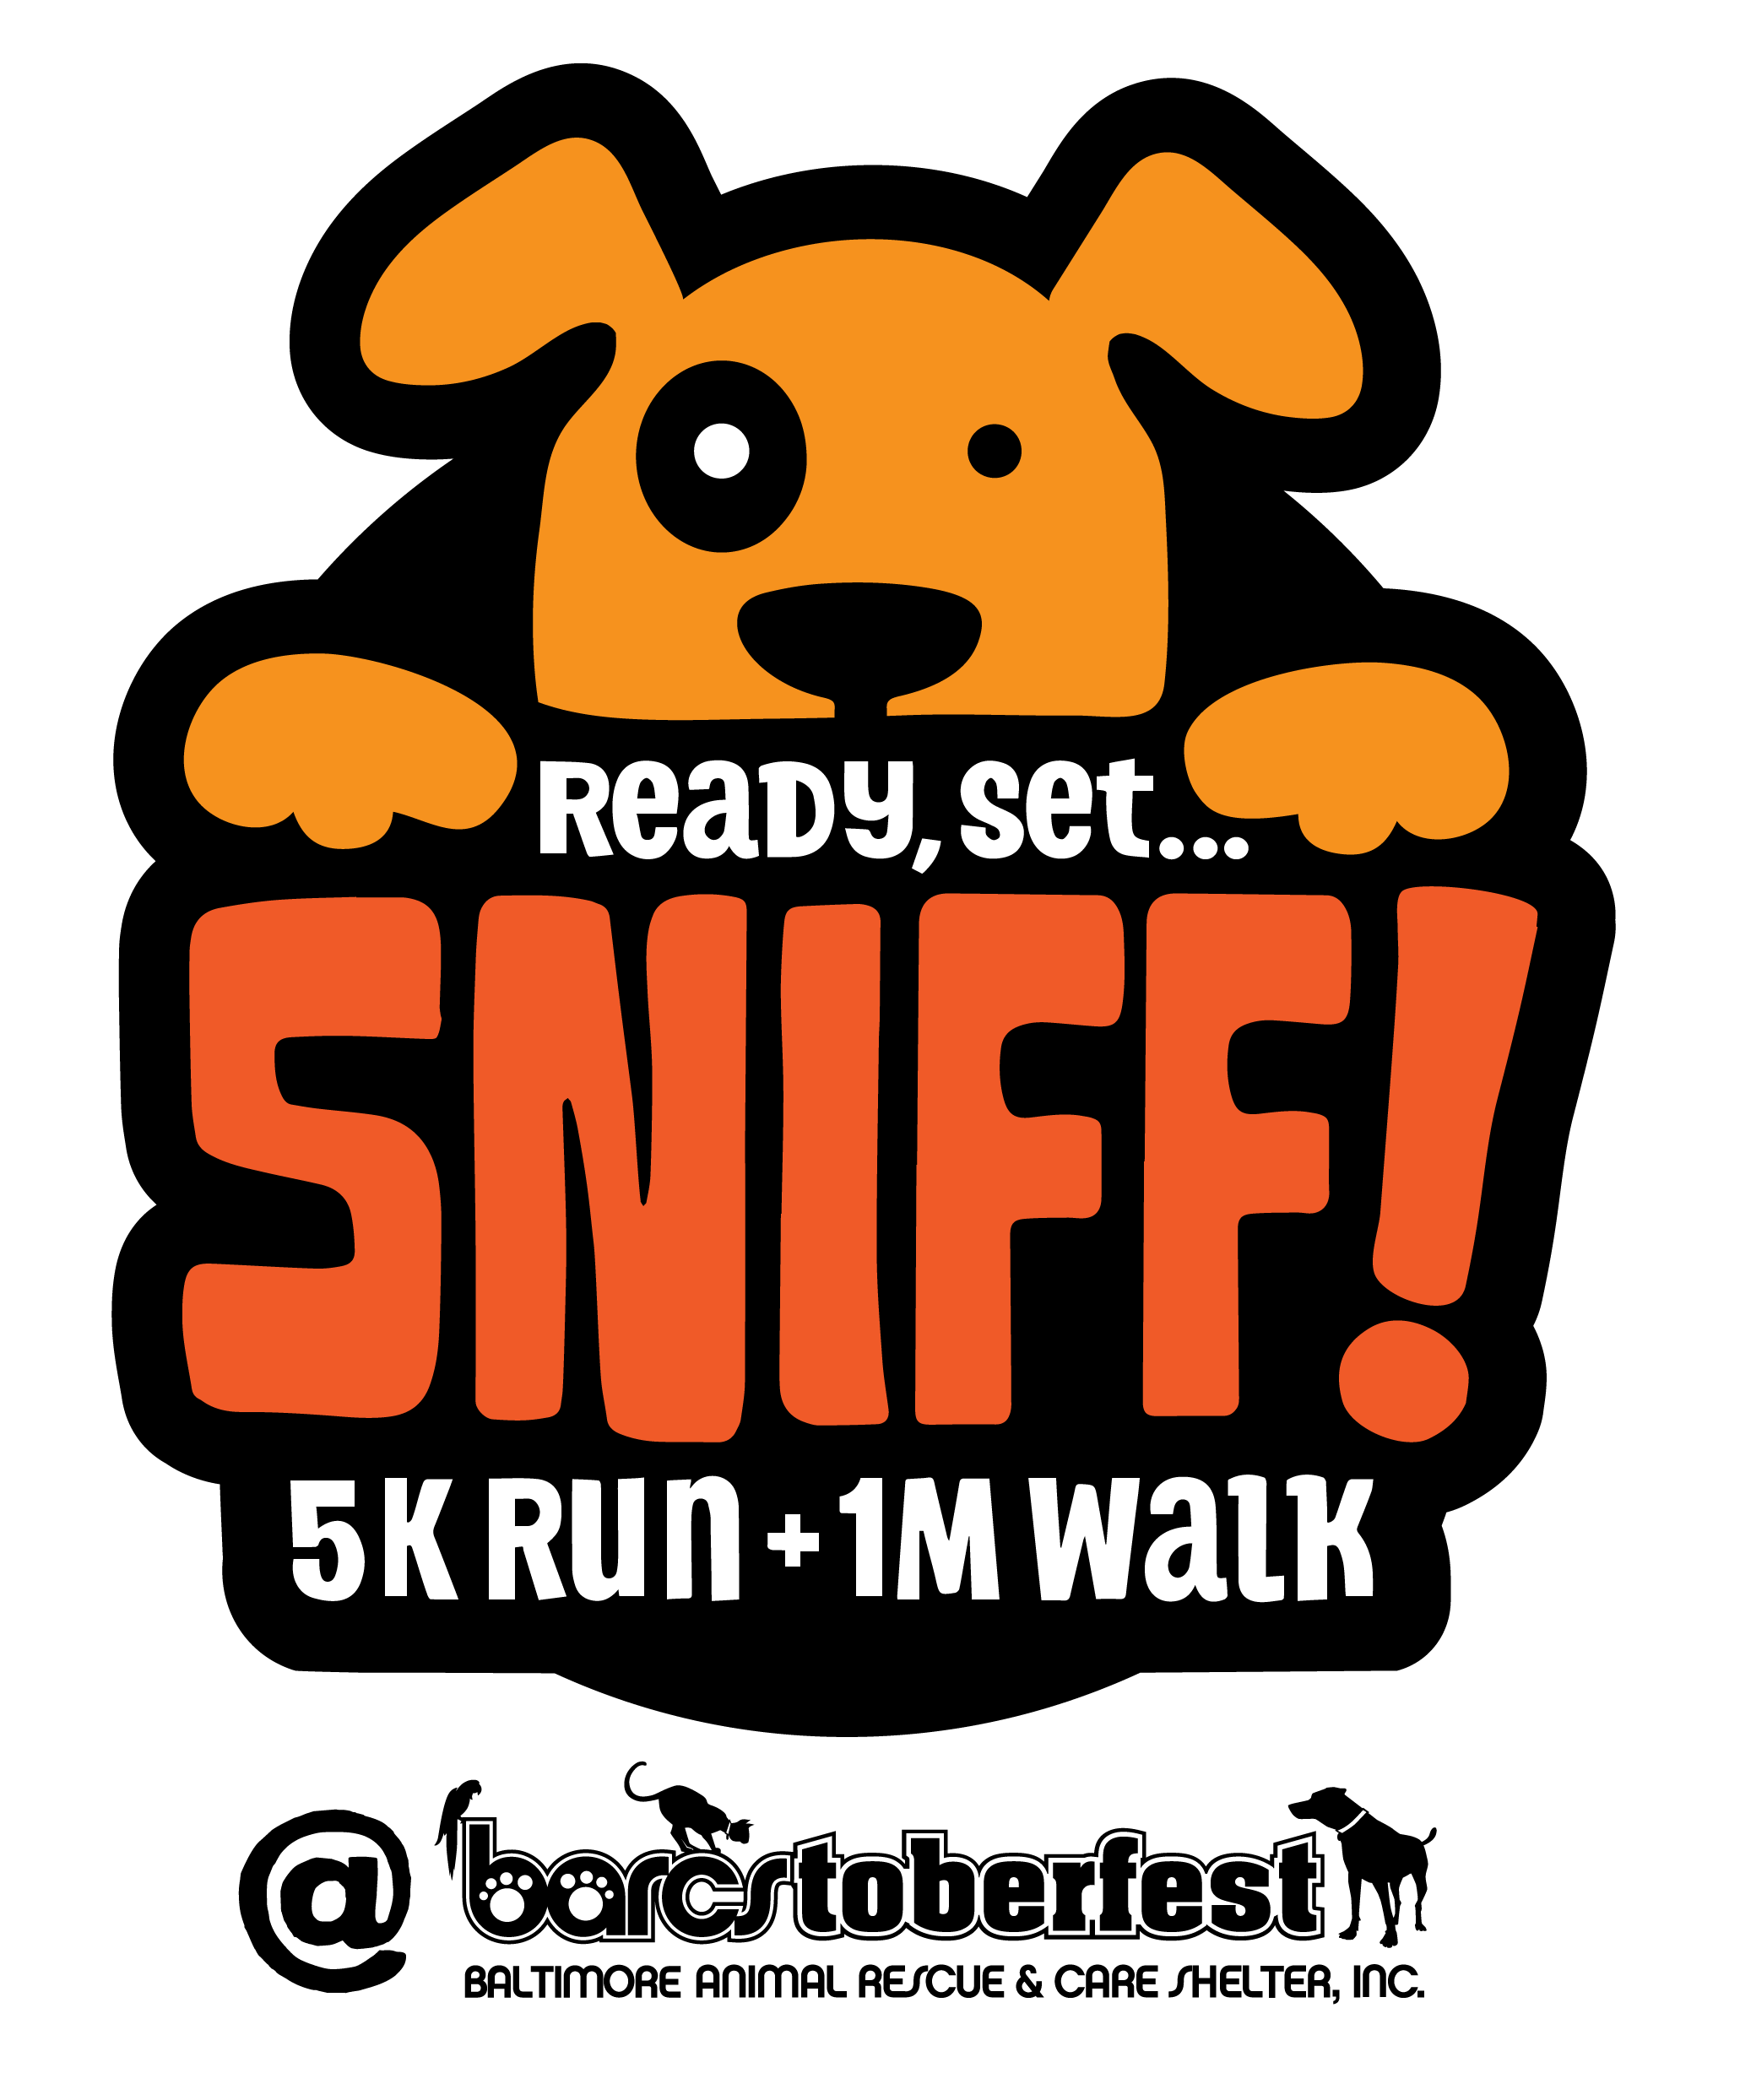 Ready set sniff k. Clipart walking jog in place